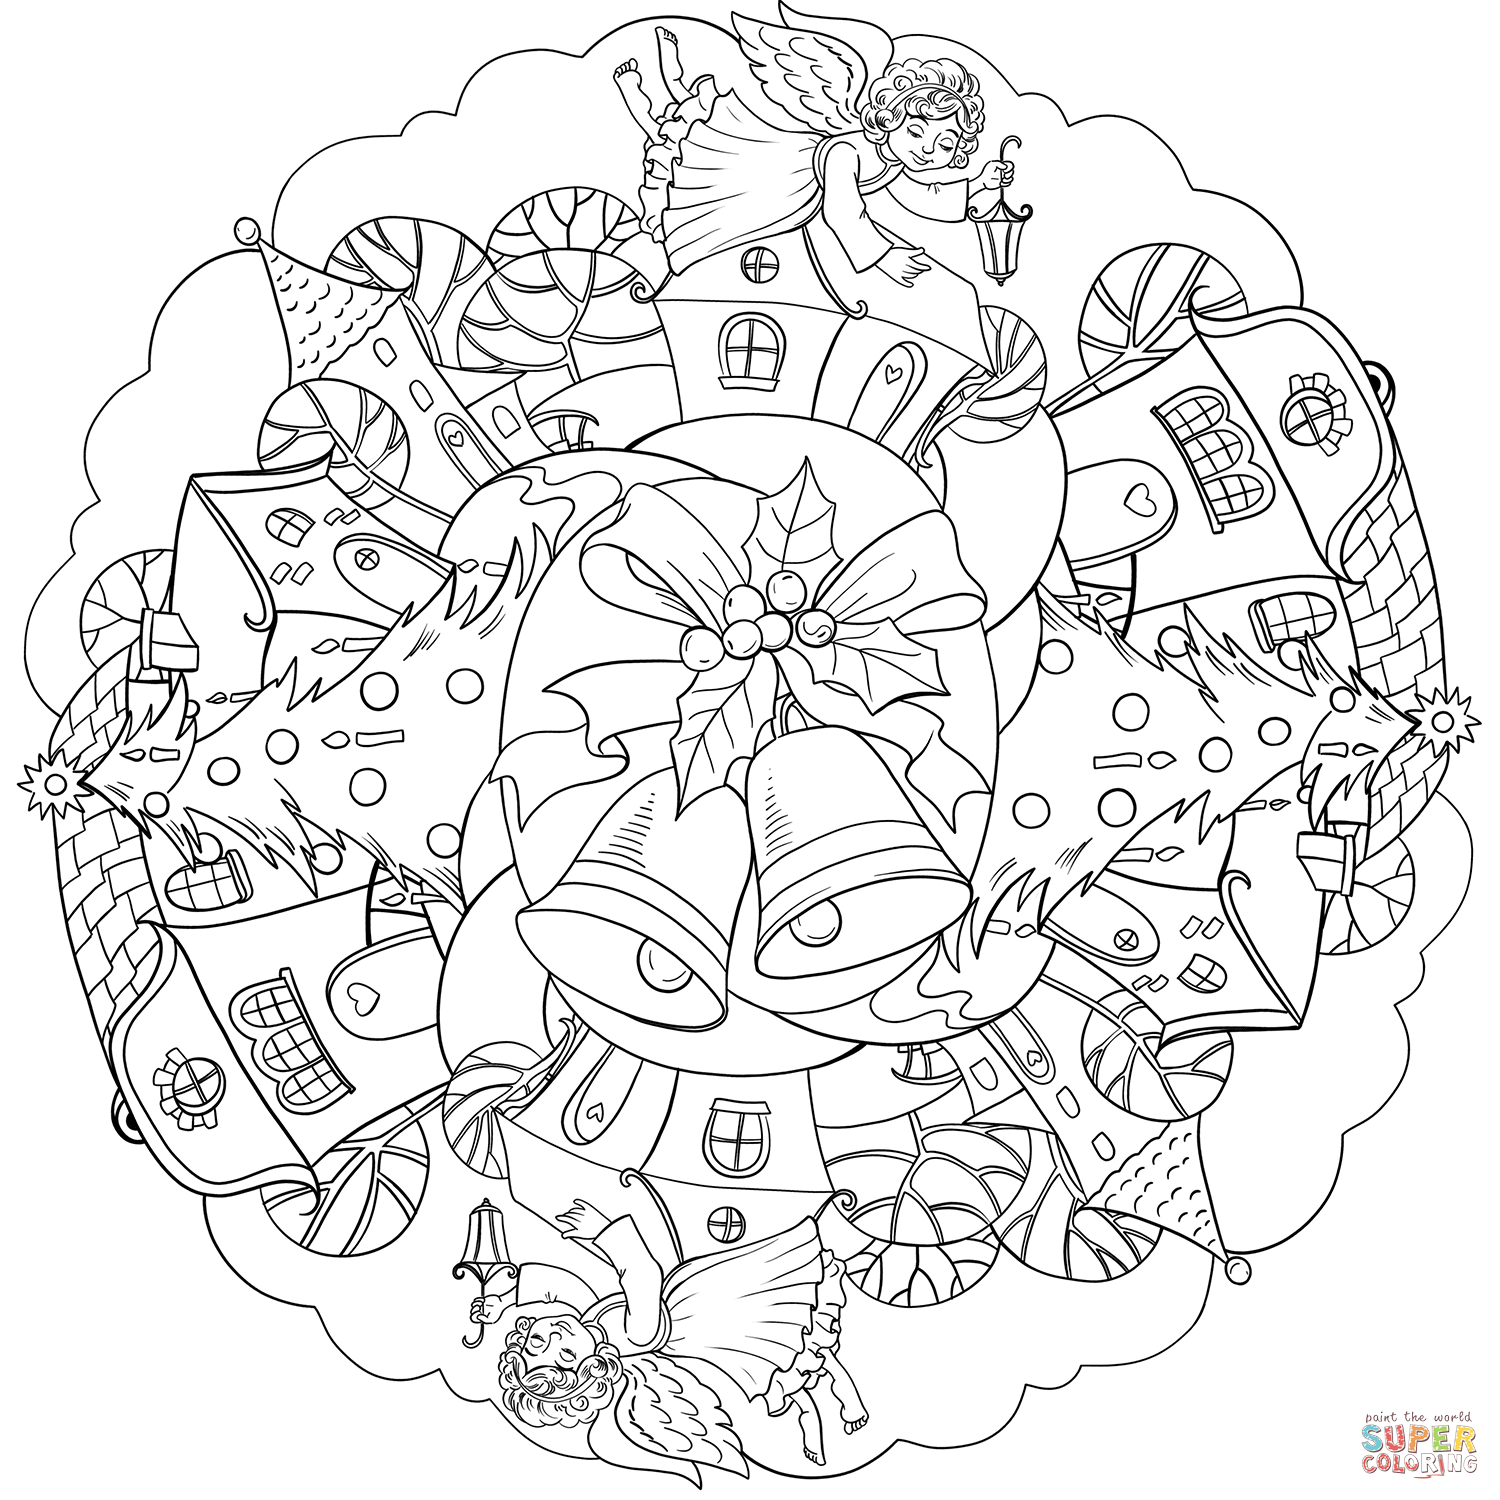 christmas mandala coloring pages printable christmas mandala with bell and angel in town coloring printable pages mandala coloring christmas